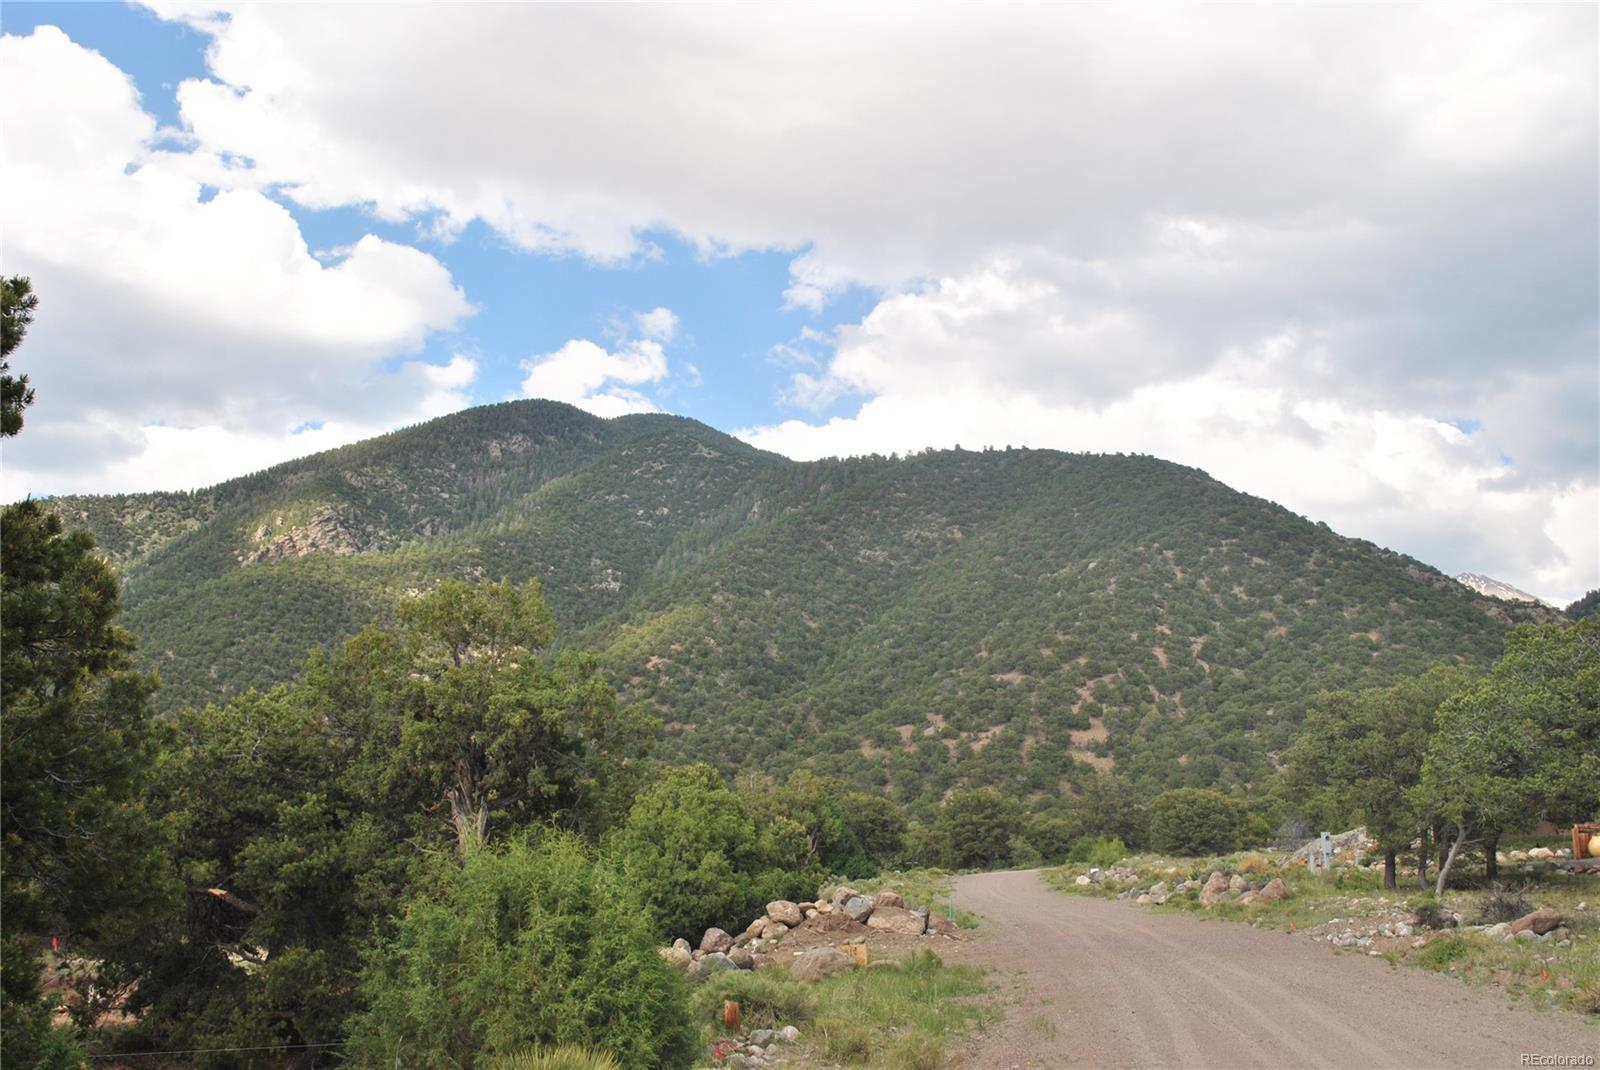 1198&1199 Hilltop Way, Crestone, CO 81131 - Crestone, CO real estate listing